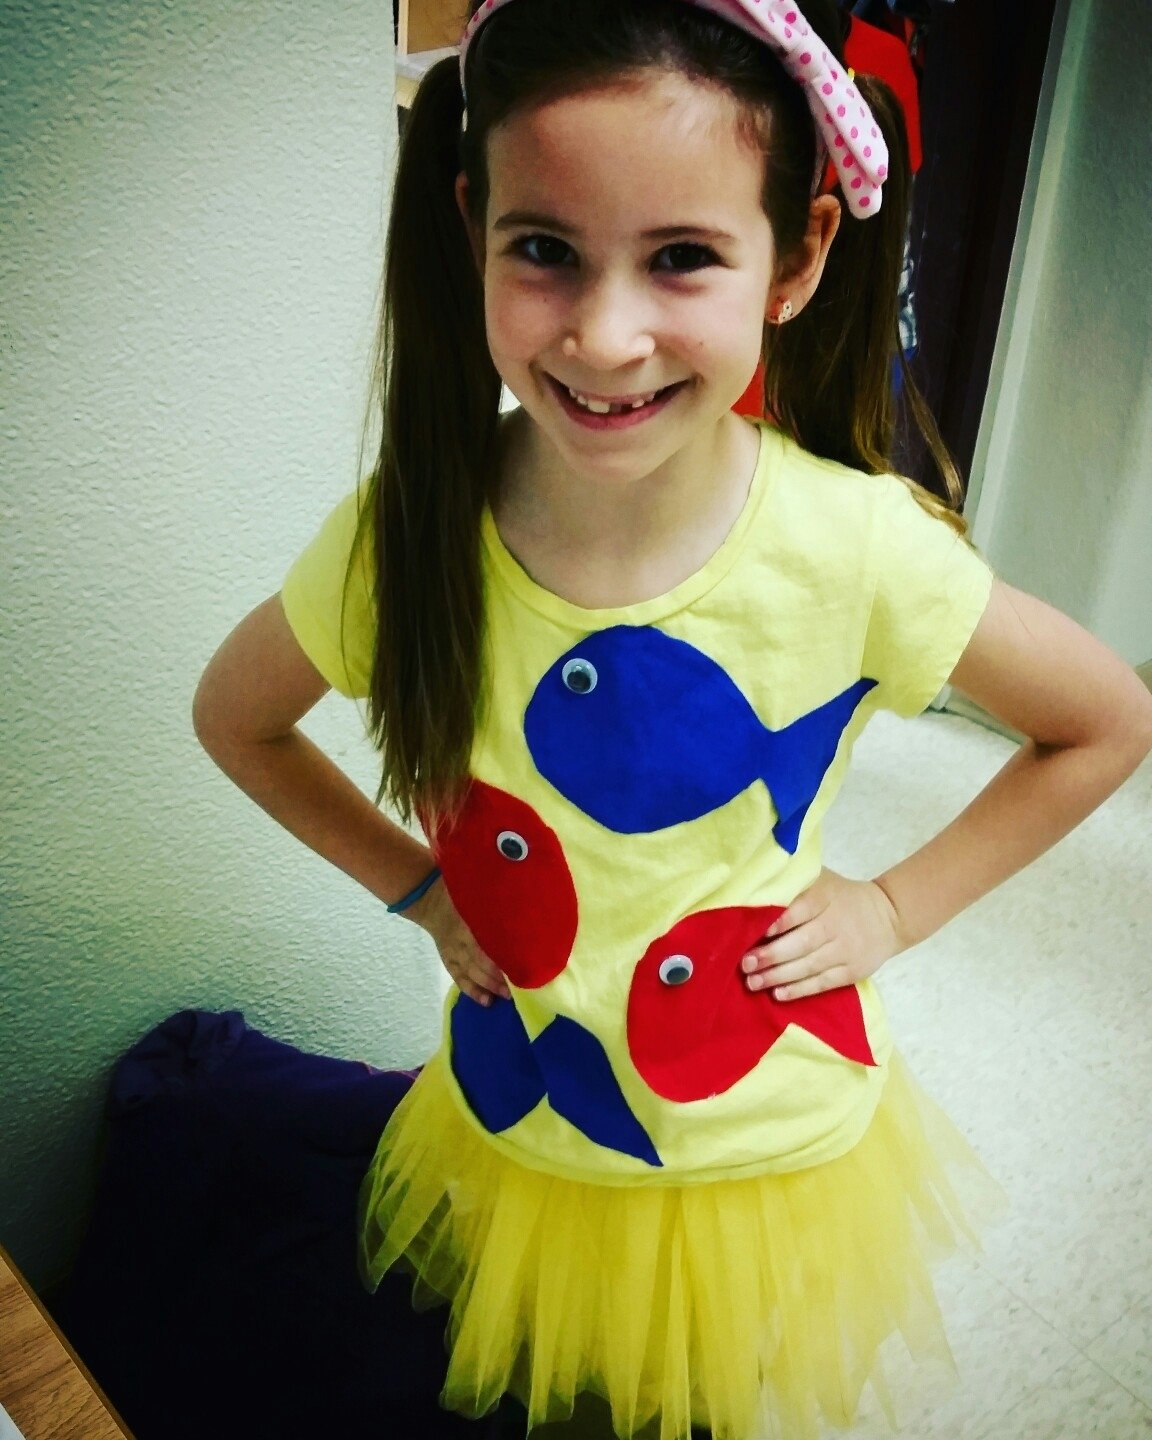 10 Stylish Dr Seuss Costume Ideas Homemade diy dr seuss costume one fish two fish red fish blue fish costume 3 2020